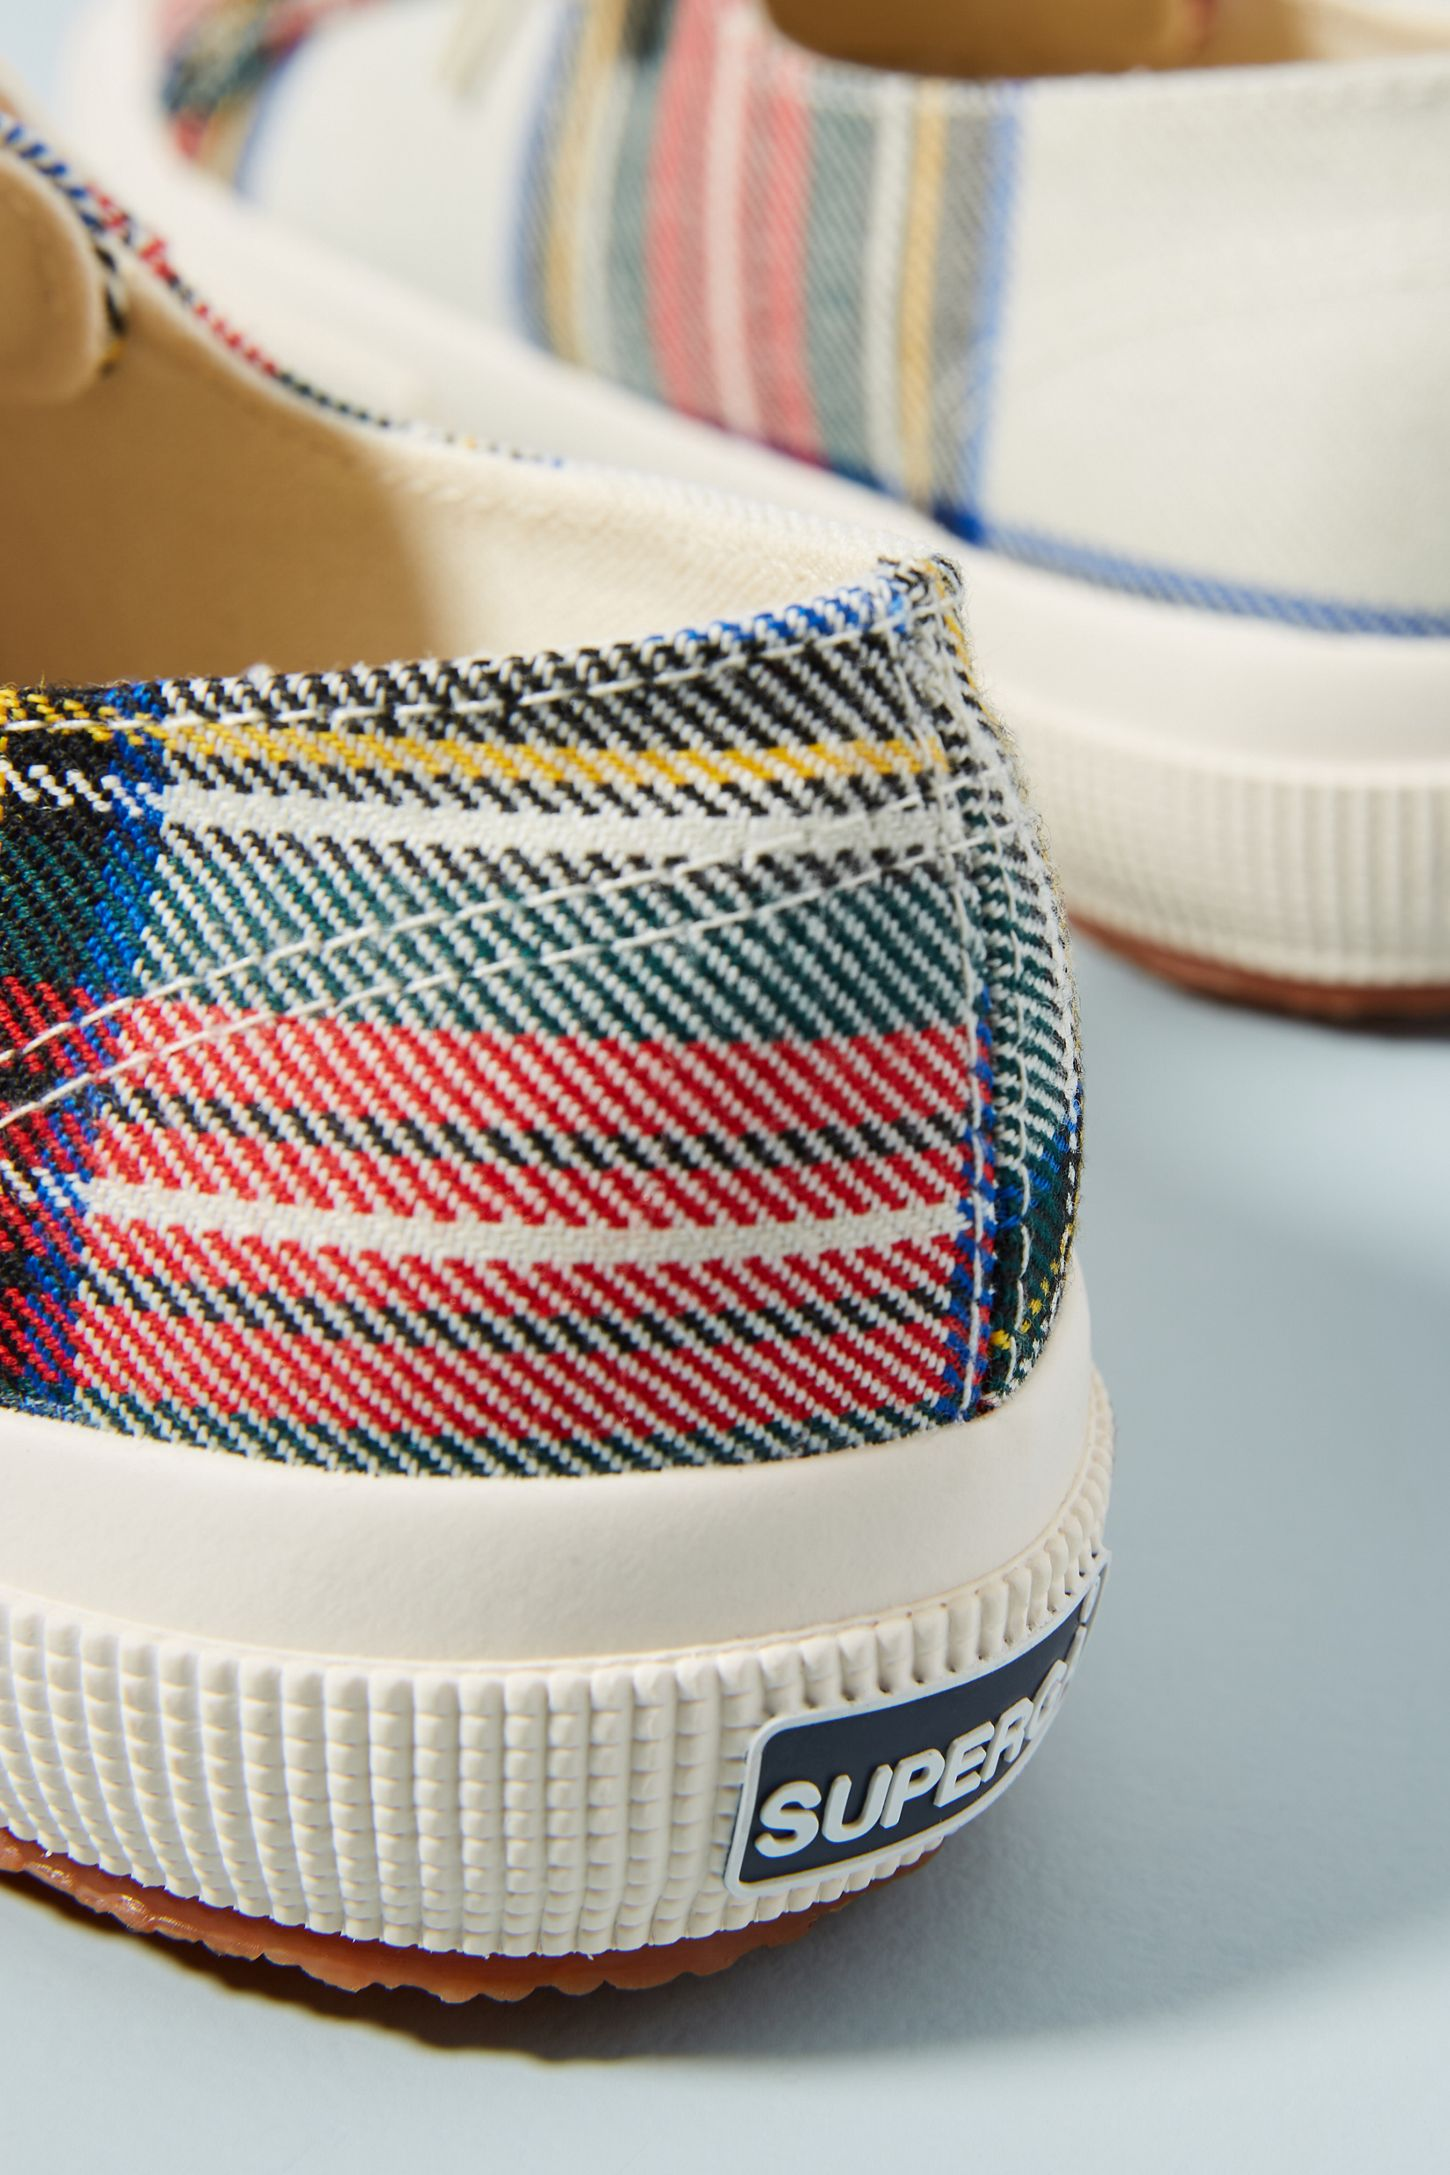 7efec91b053f Slide View  4  Superga Tartan Sneakers